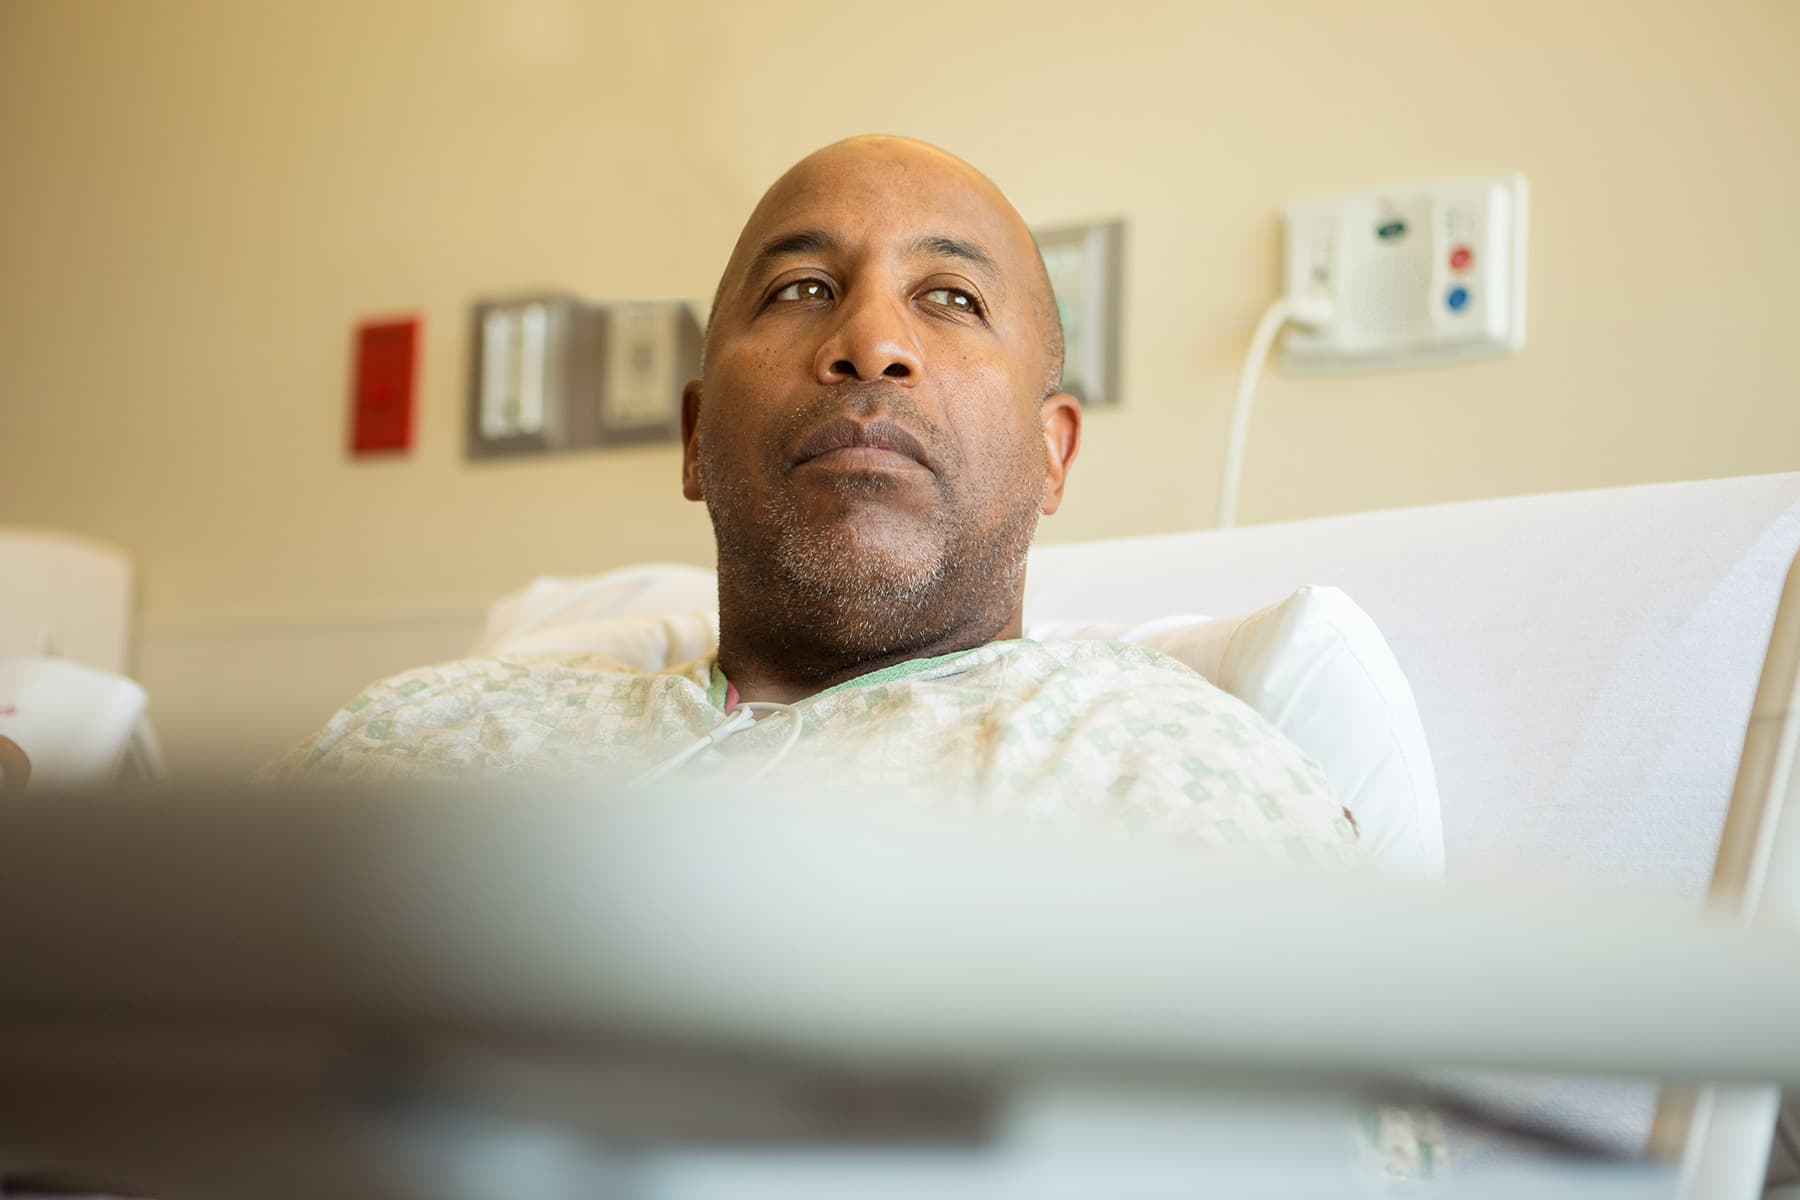 photo of man in hospital bed